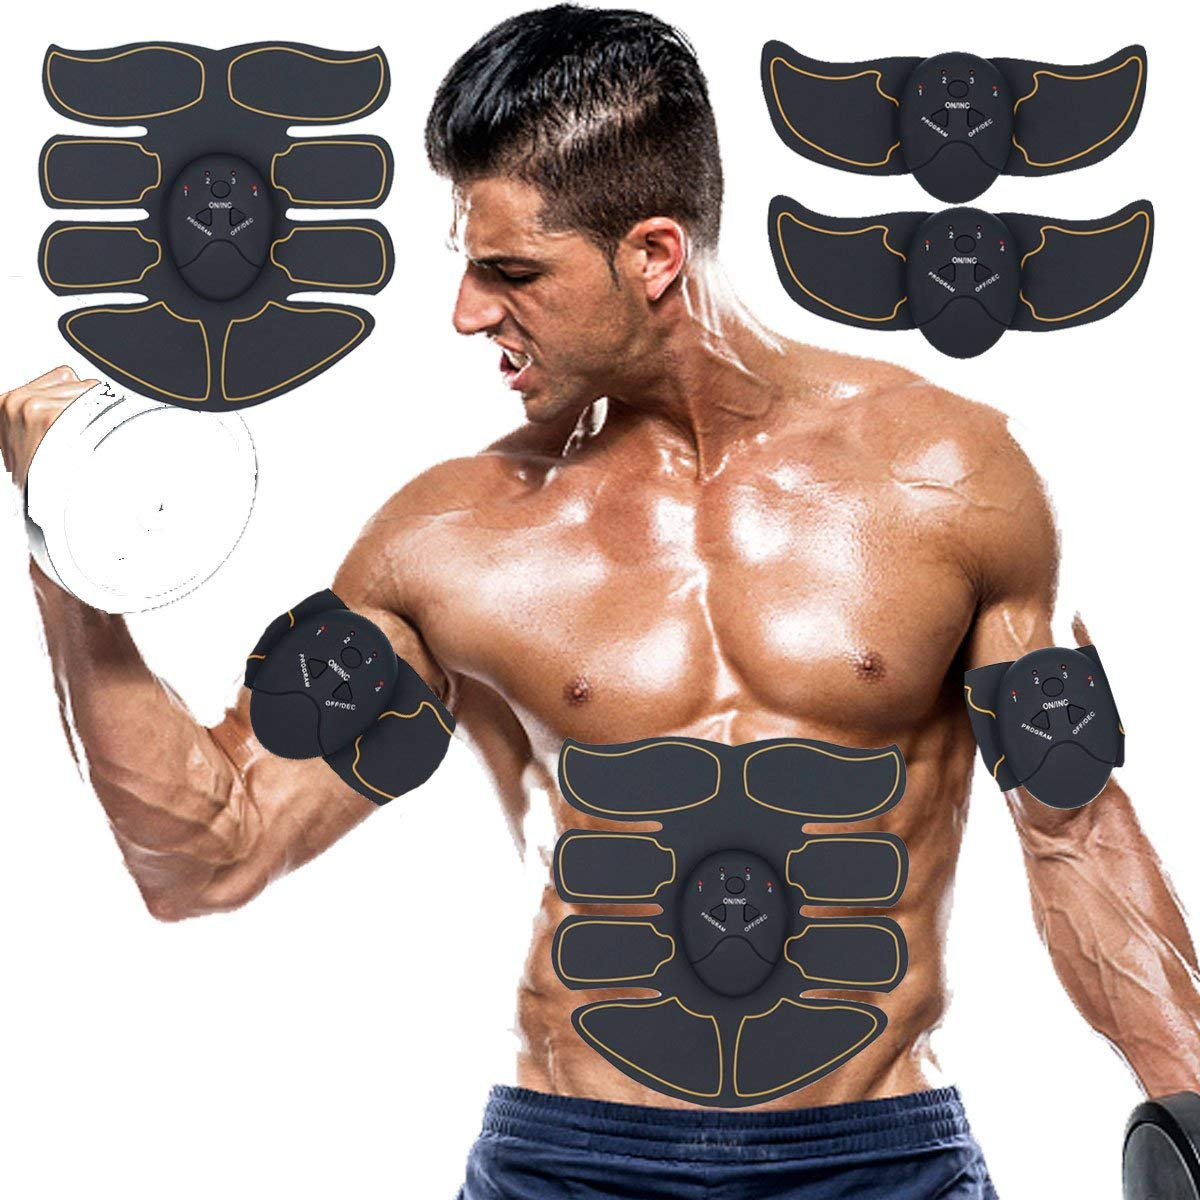 SPORTMAO Abs Stimulator Muscle Trainer Ultimate Abs Stimulator Ab Stimulator for Men Women Abdominal Work Out Ads Power Fitness Abs Muscle Training Gear Workout Equipment Portable Stimulator Abs Belt